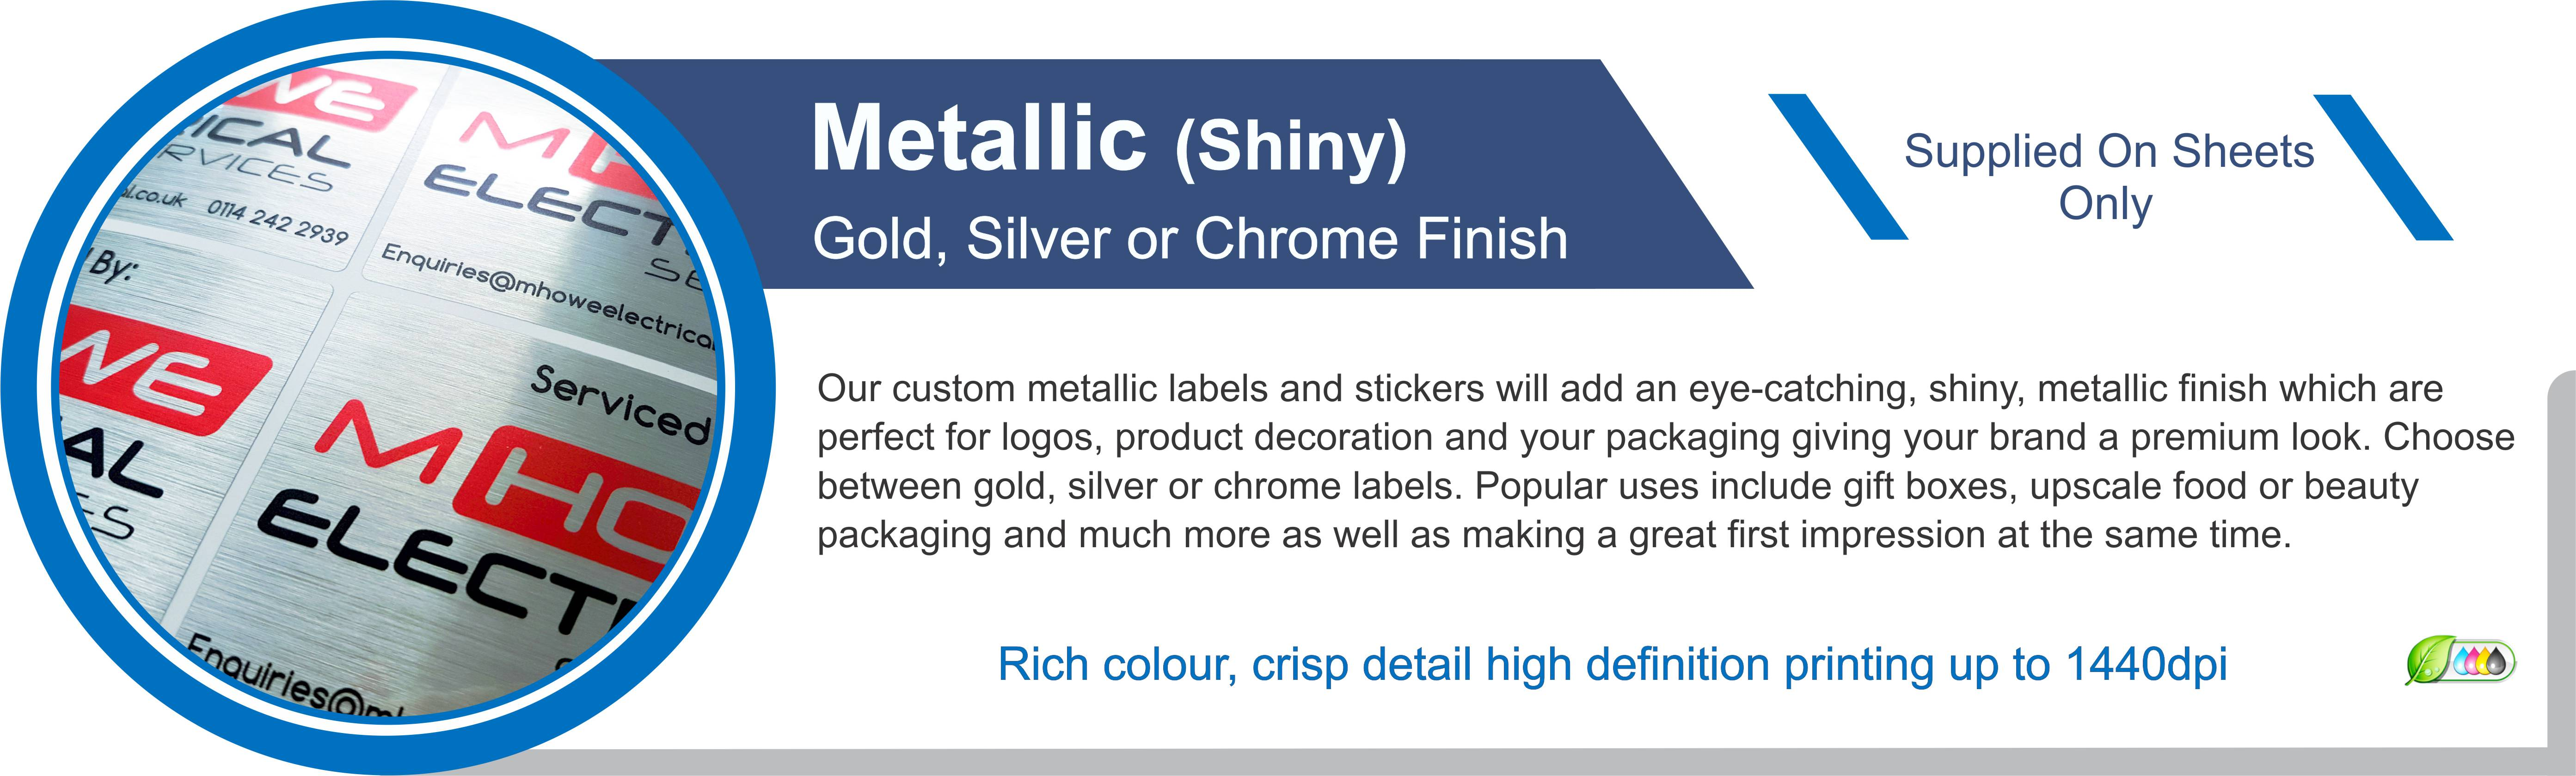 Lizards Custom Labels Products Metallic Labels Stickers